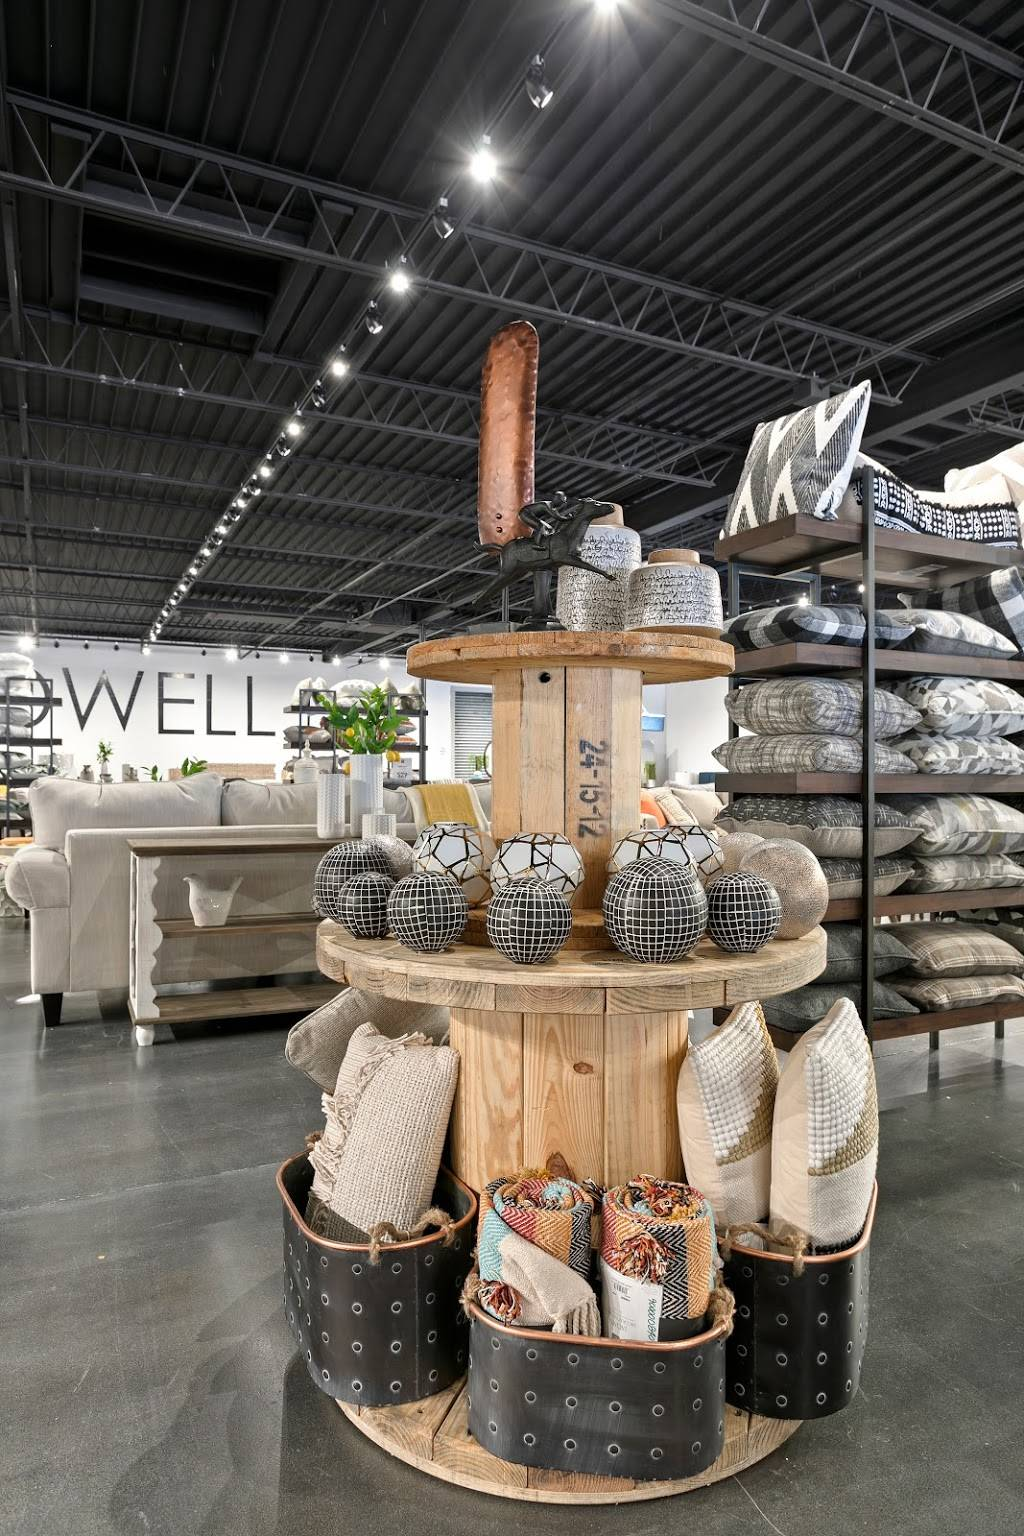 Dwell Home Market - furniture store  | Photo 8 of 10 | Address: 4912 S Lois Ave, Tampa, FL 33611, USA | Phone: (813) 602-0360